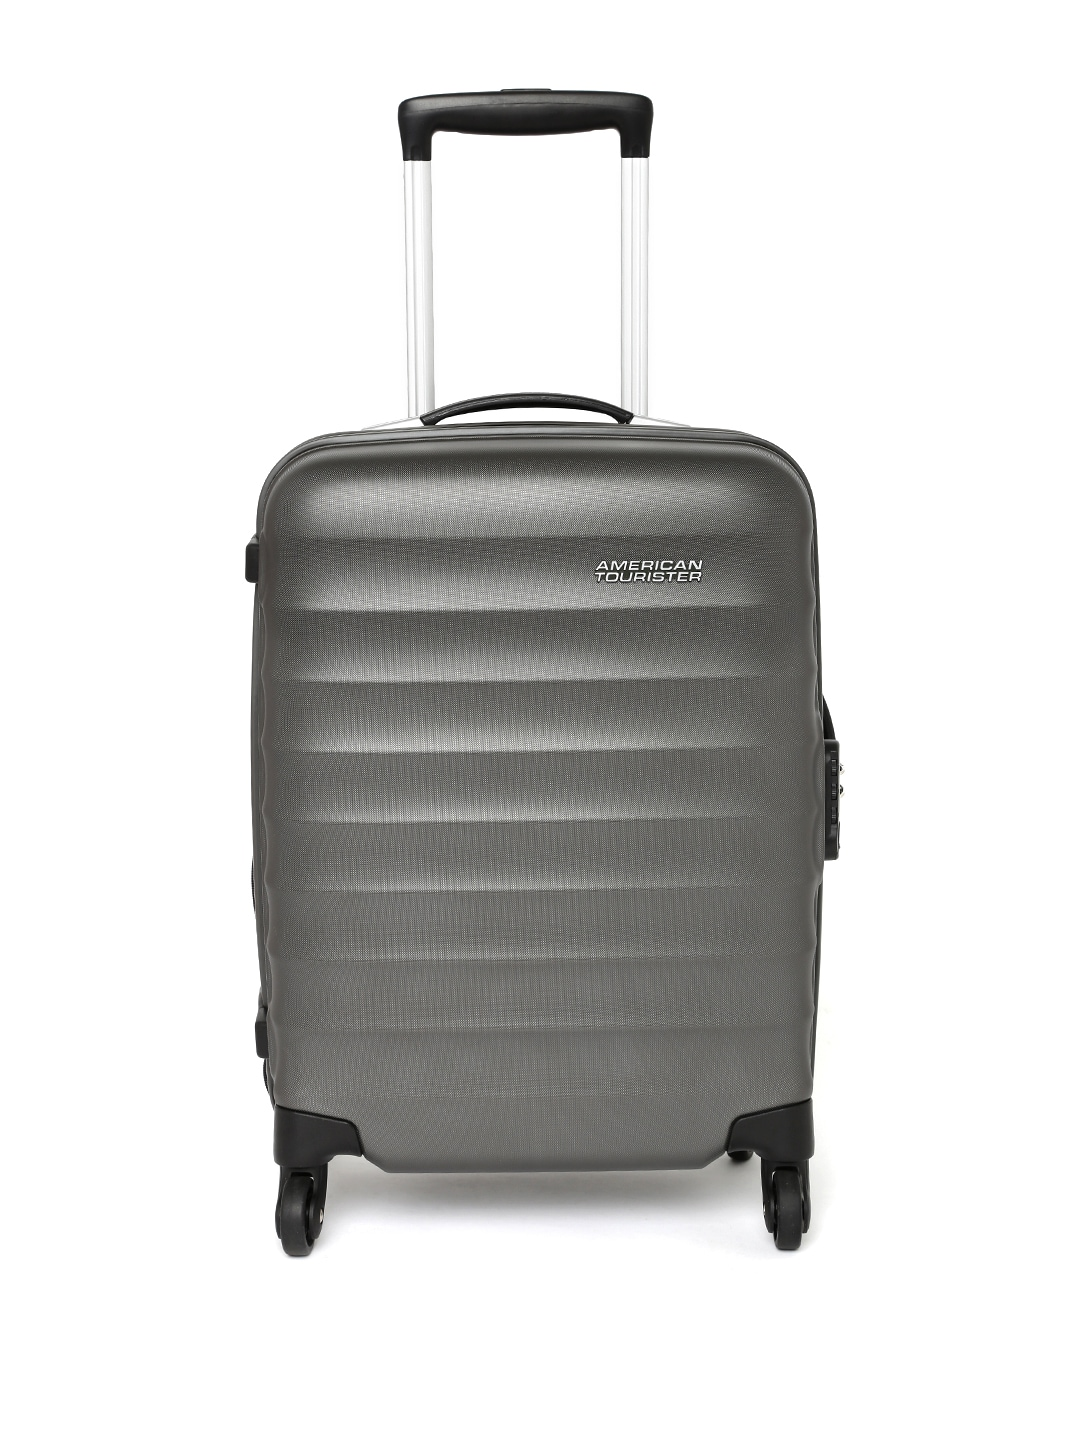 American Tourister Trolley Bag - Buy Trolley Bags Online in India 5bb56e68b3